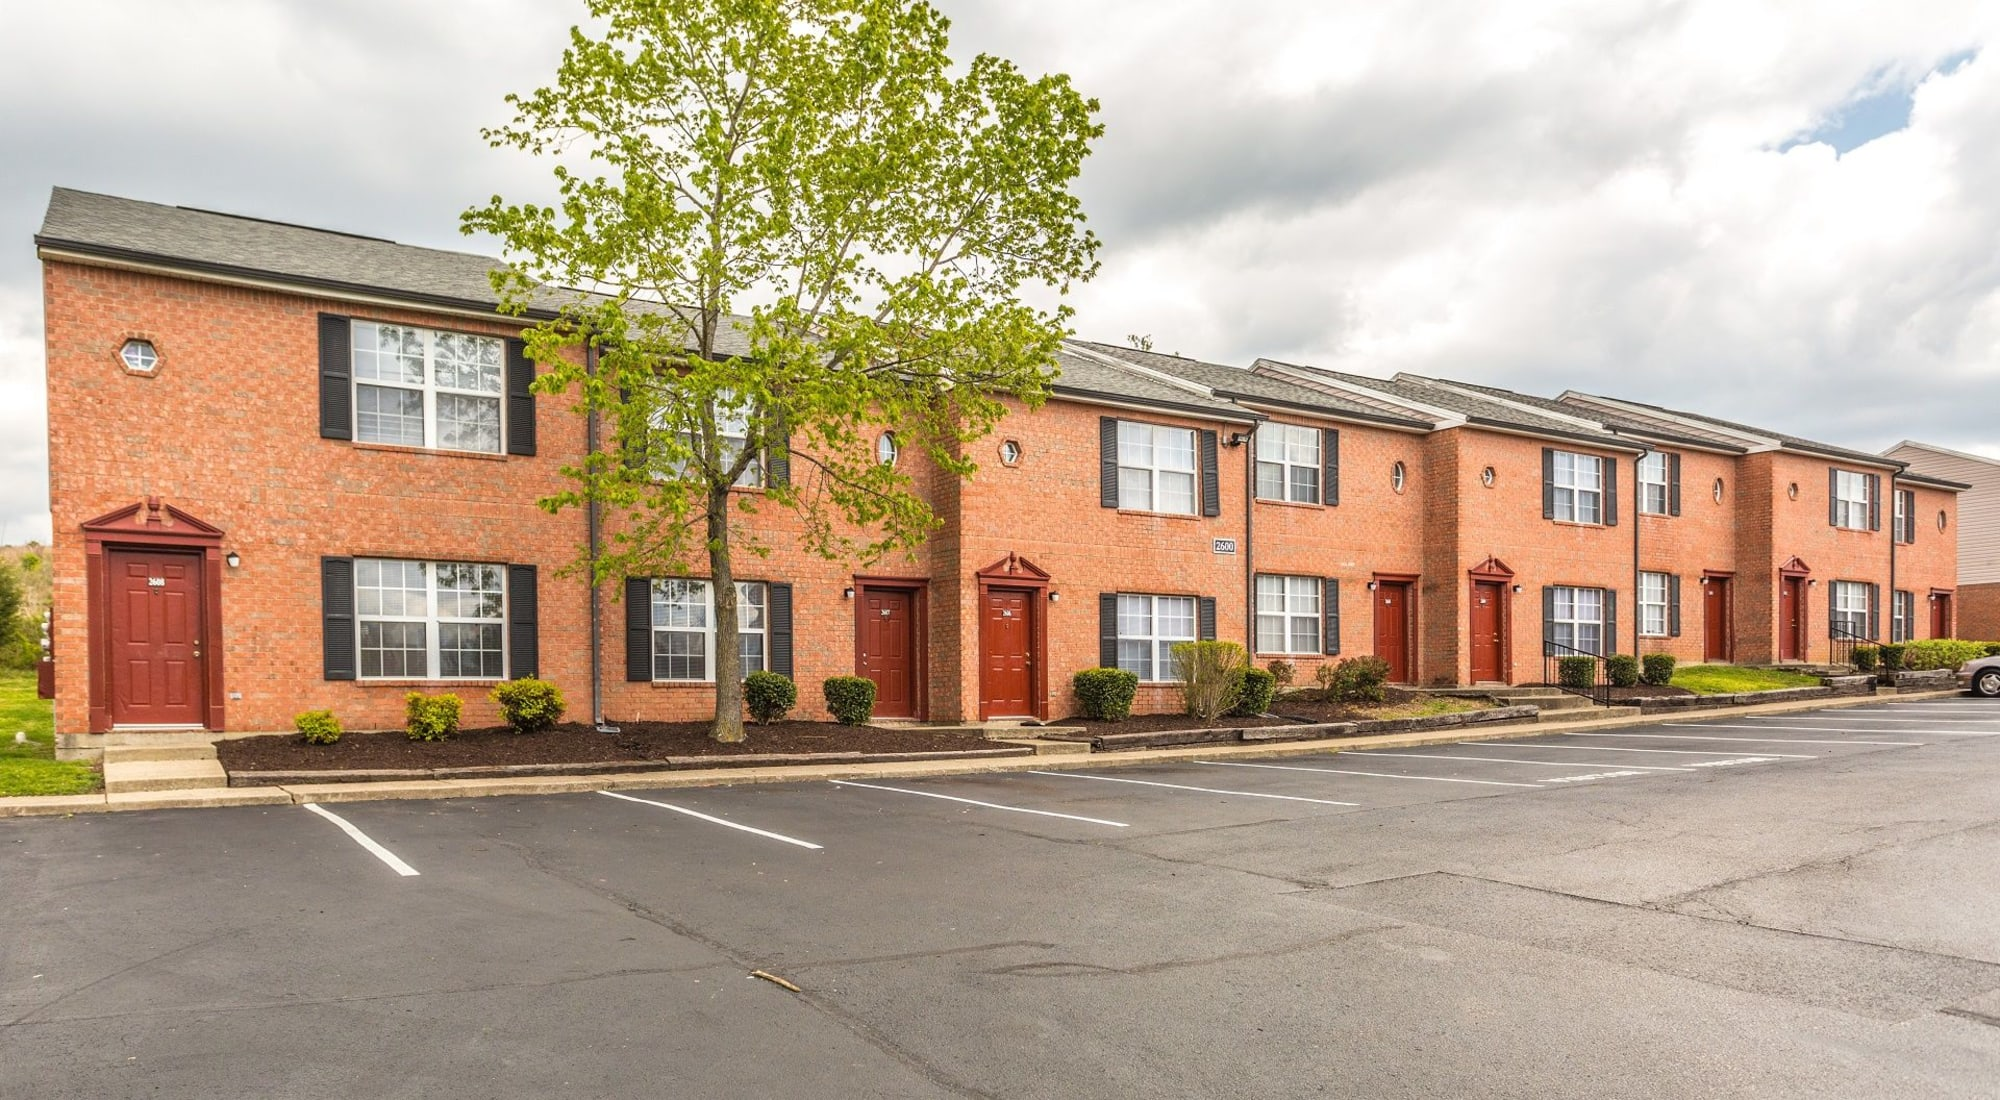 Schedule a tour of Cypress Creek Townhomes in Goodlettsville, Tennessee